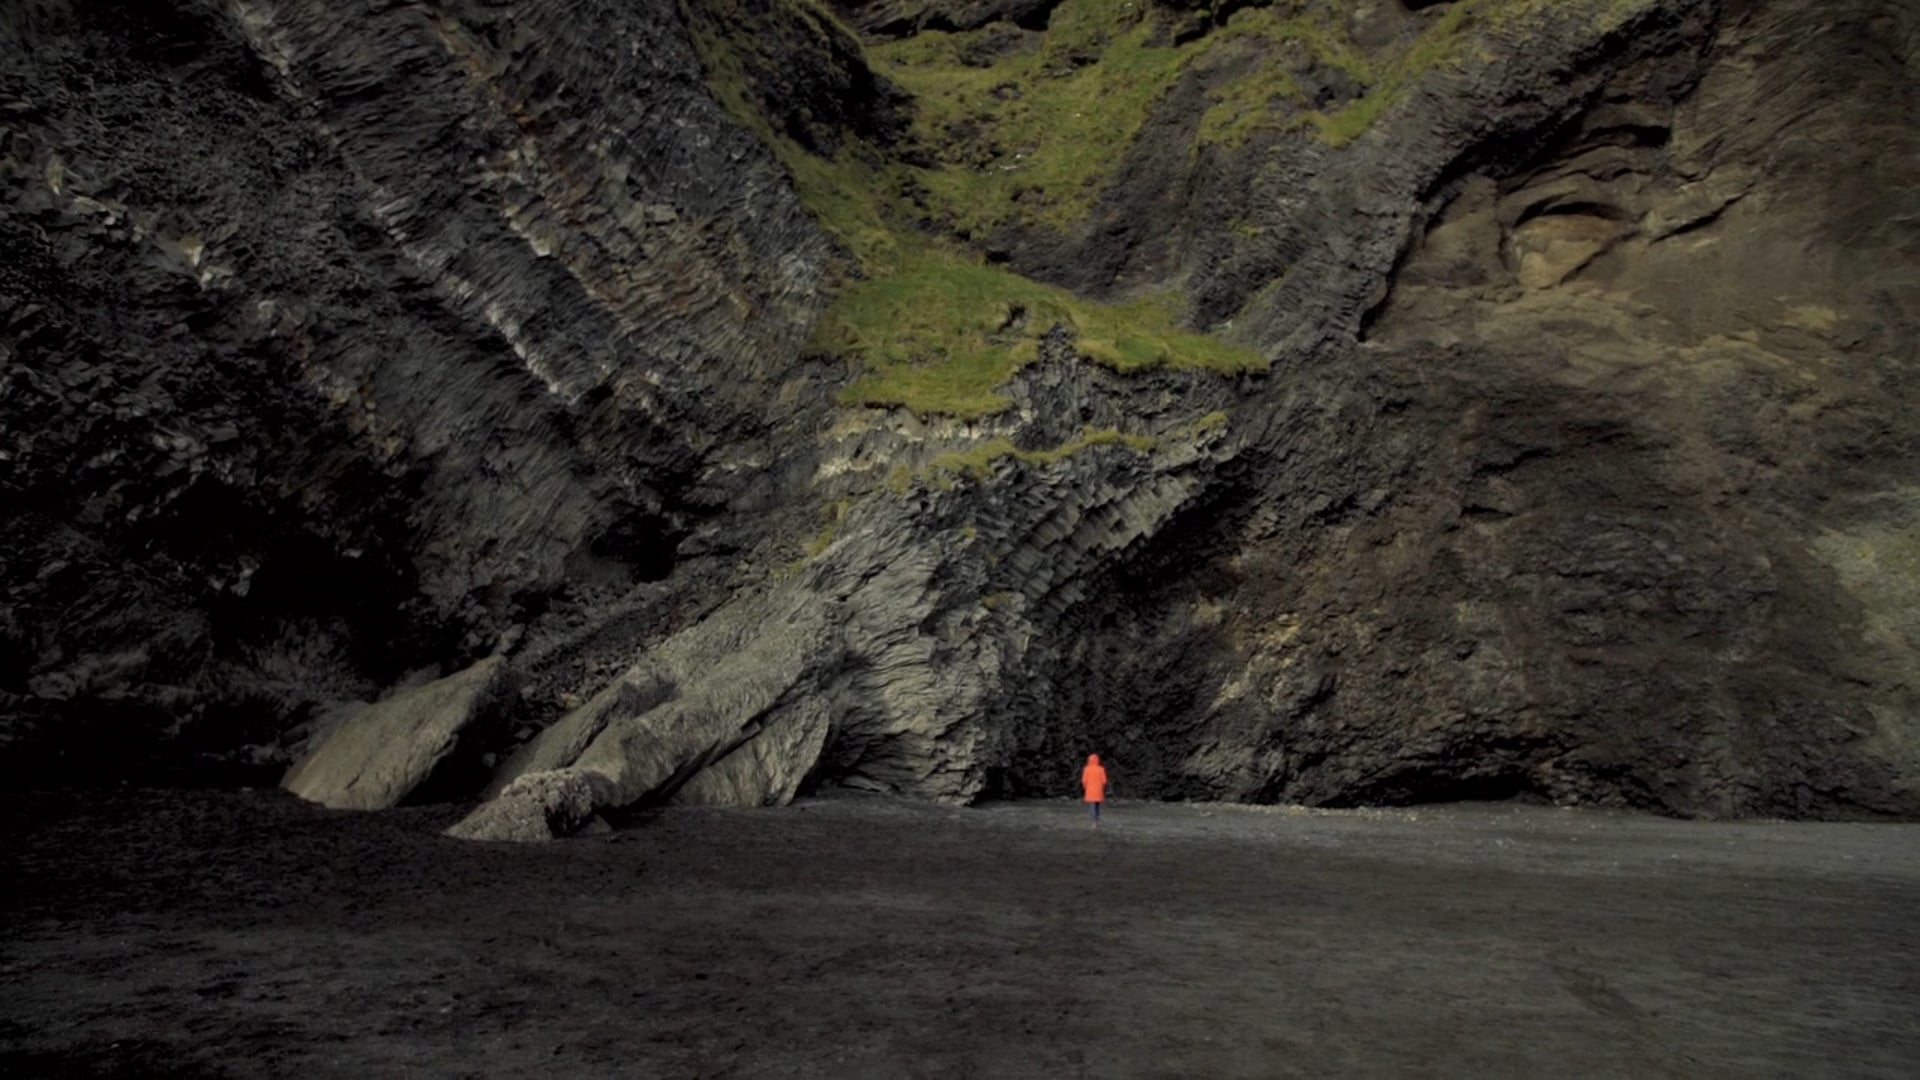 ICELAND - WE ARE NOT ALONE